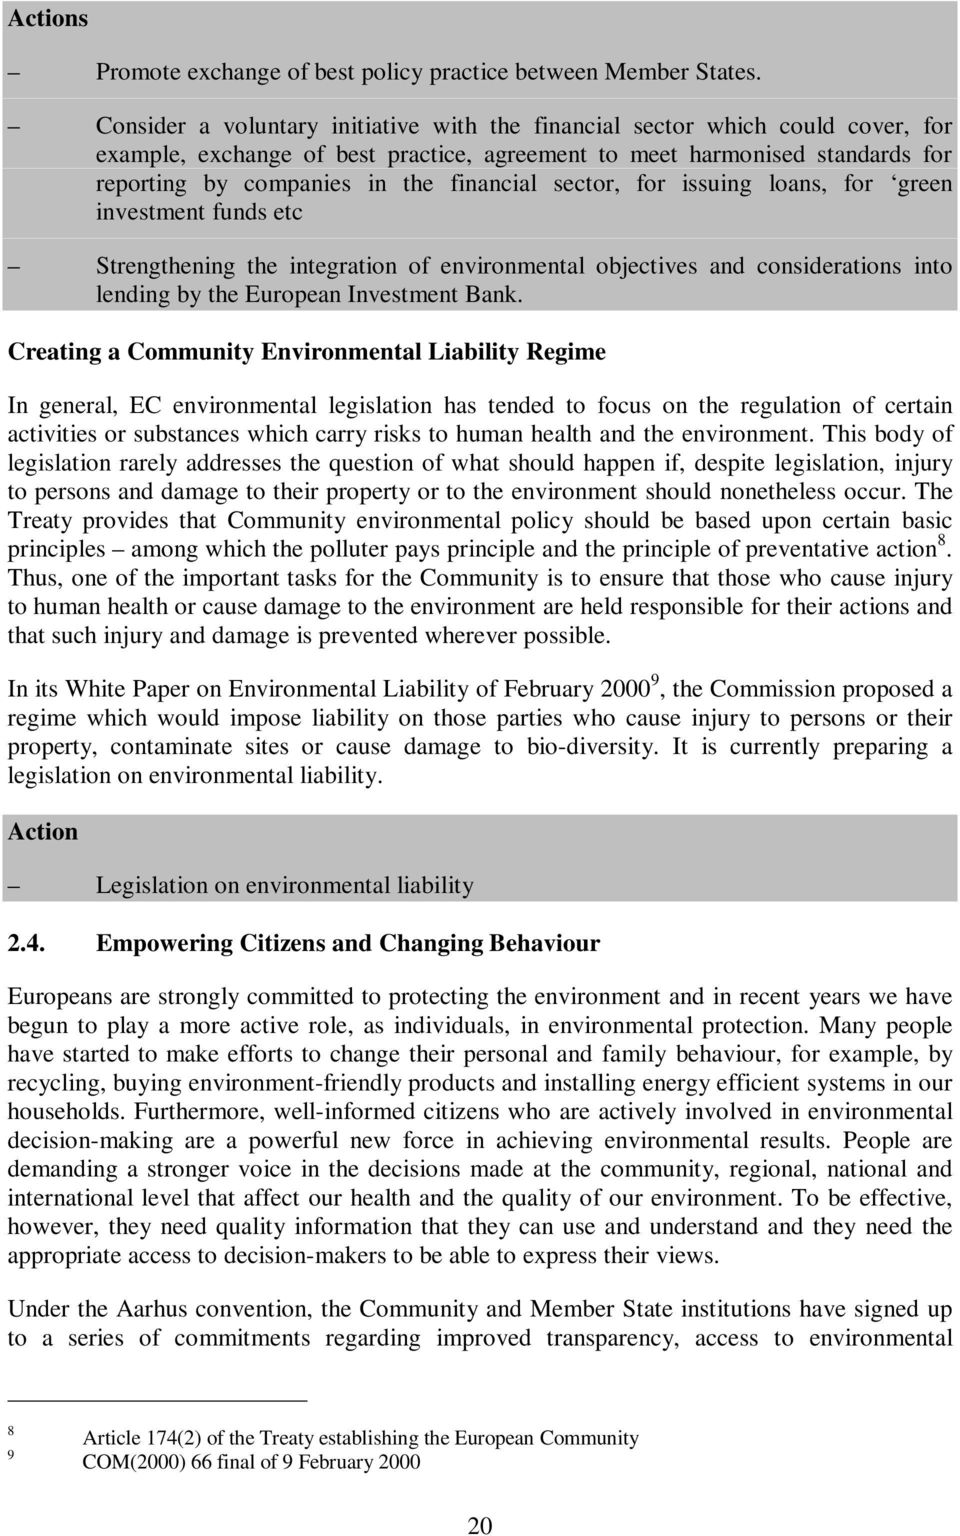 sector, for issuing loans, for green investment funds etc Strengthening the integration of environmental objectives and considerations into lending by the European Investment Bank.